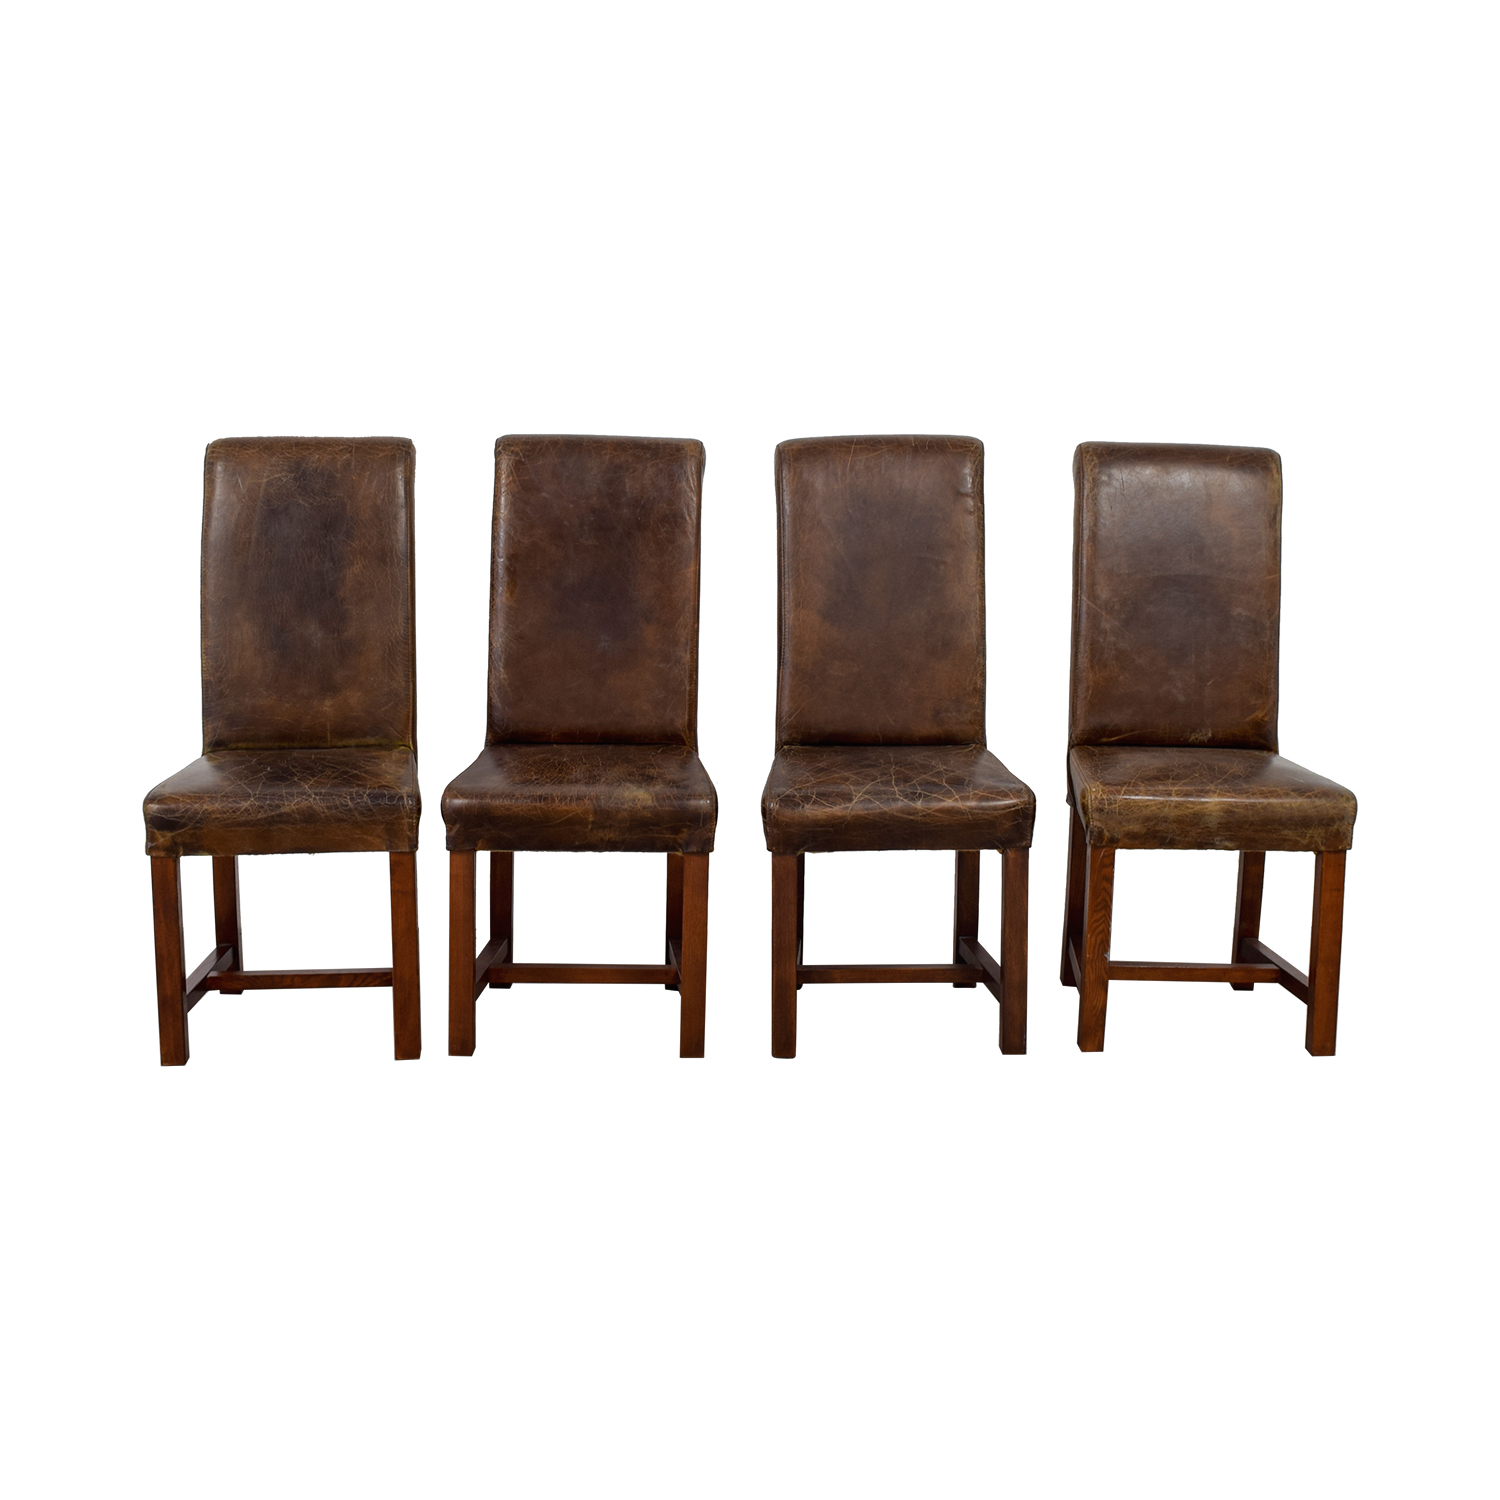 Faulkner Faulkner Distressed Brown Leather Chairs Chairs